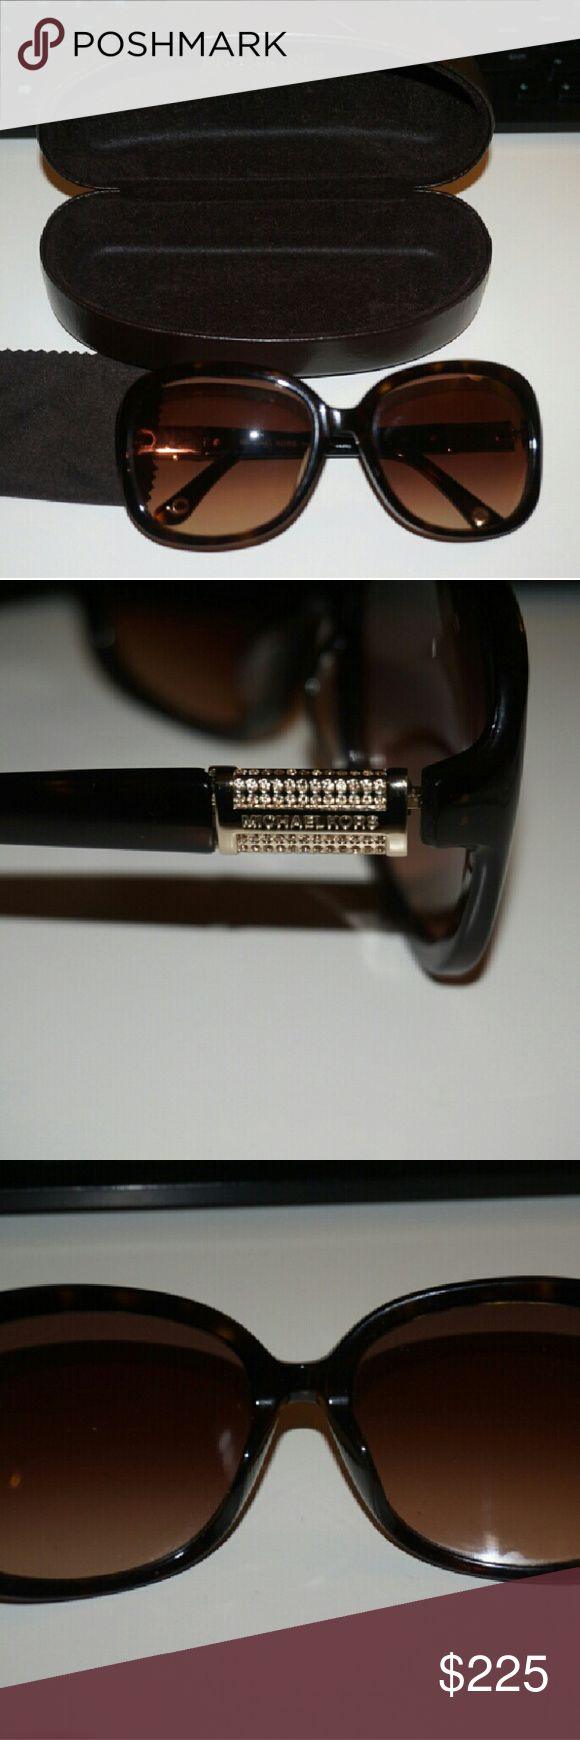 Michael Kors Sunglasses Gorgeous Michael Kors Sunglasses. Tortoise color.  Like new. Excellent Condition. Gold logo on the sides with rinestones that shine. These glasses will make a statement to any outfit!  Prefect for those sunny days! Michael Kors Accessories Sunglasses